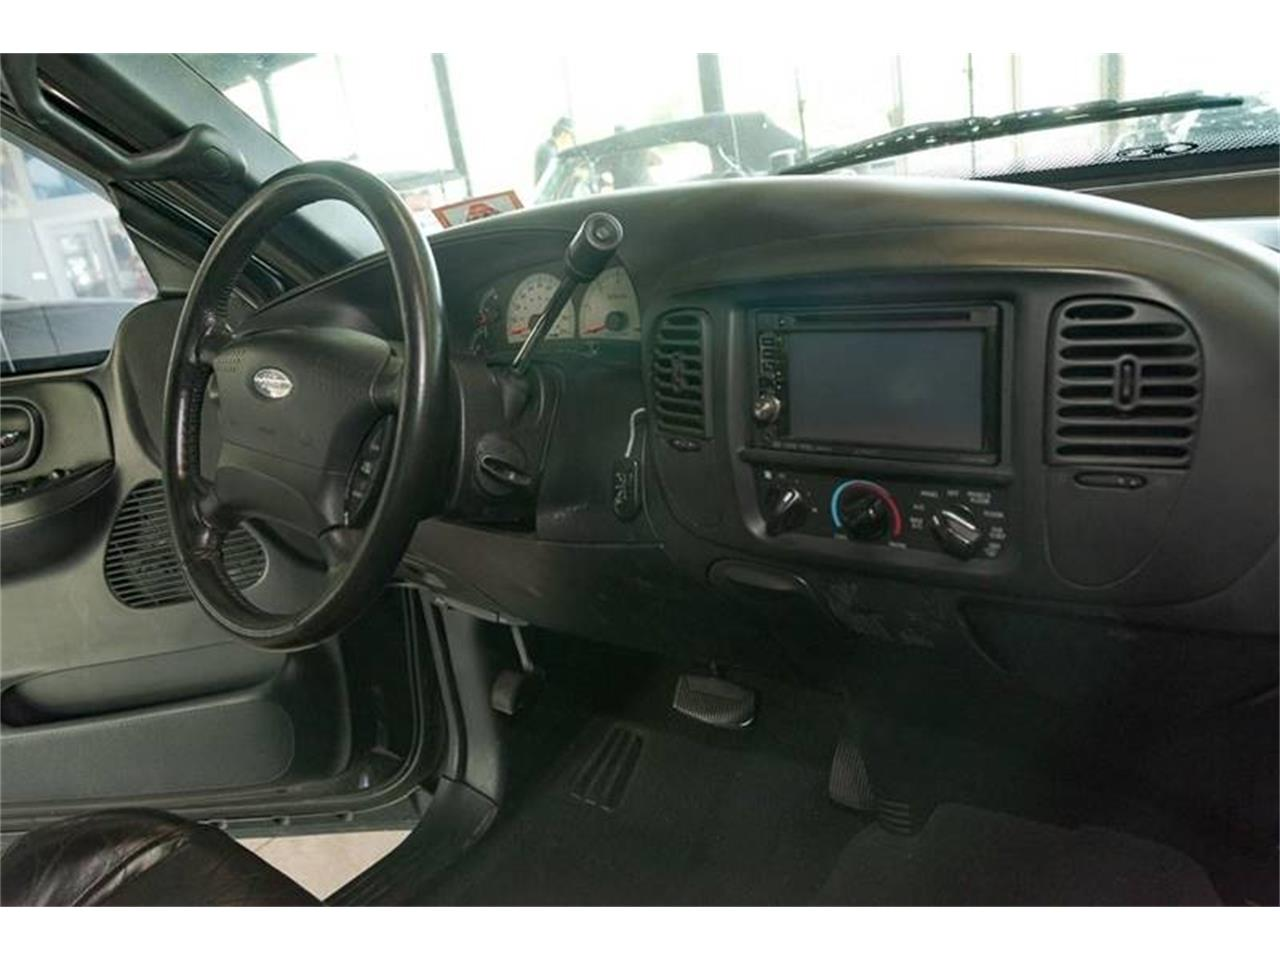 2001 Ford F150 (CC-1200940) for sale in St. Charles, Illinois